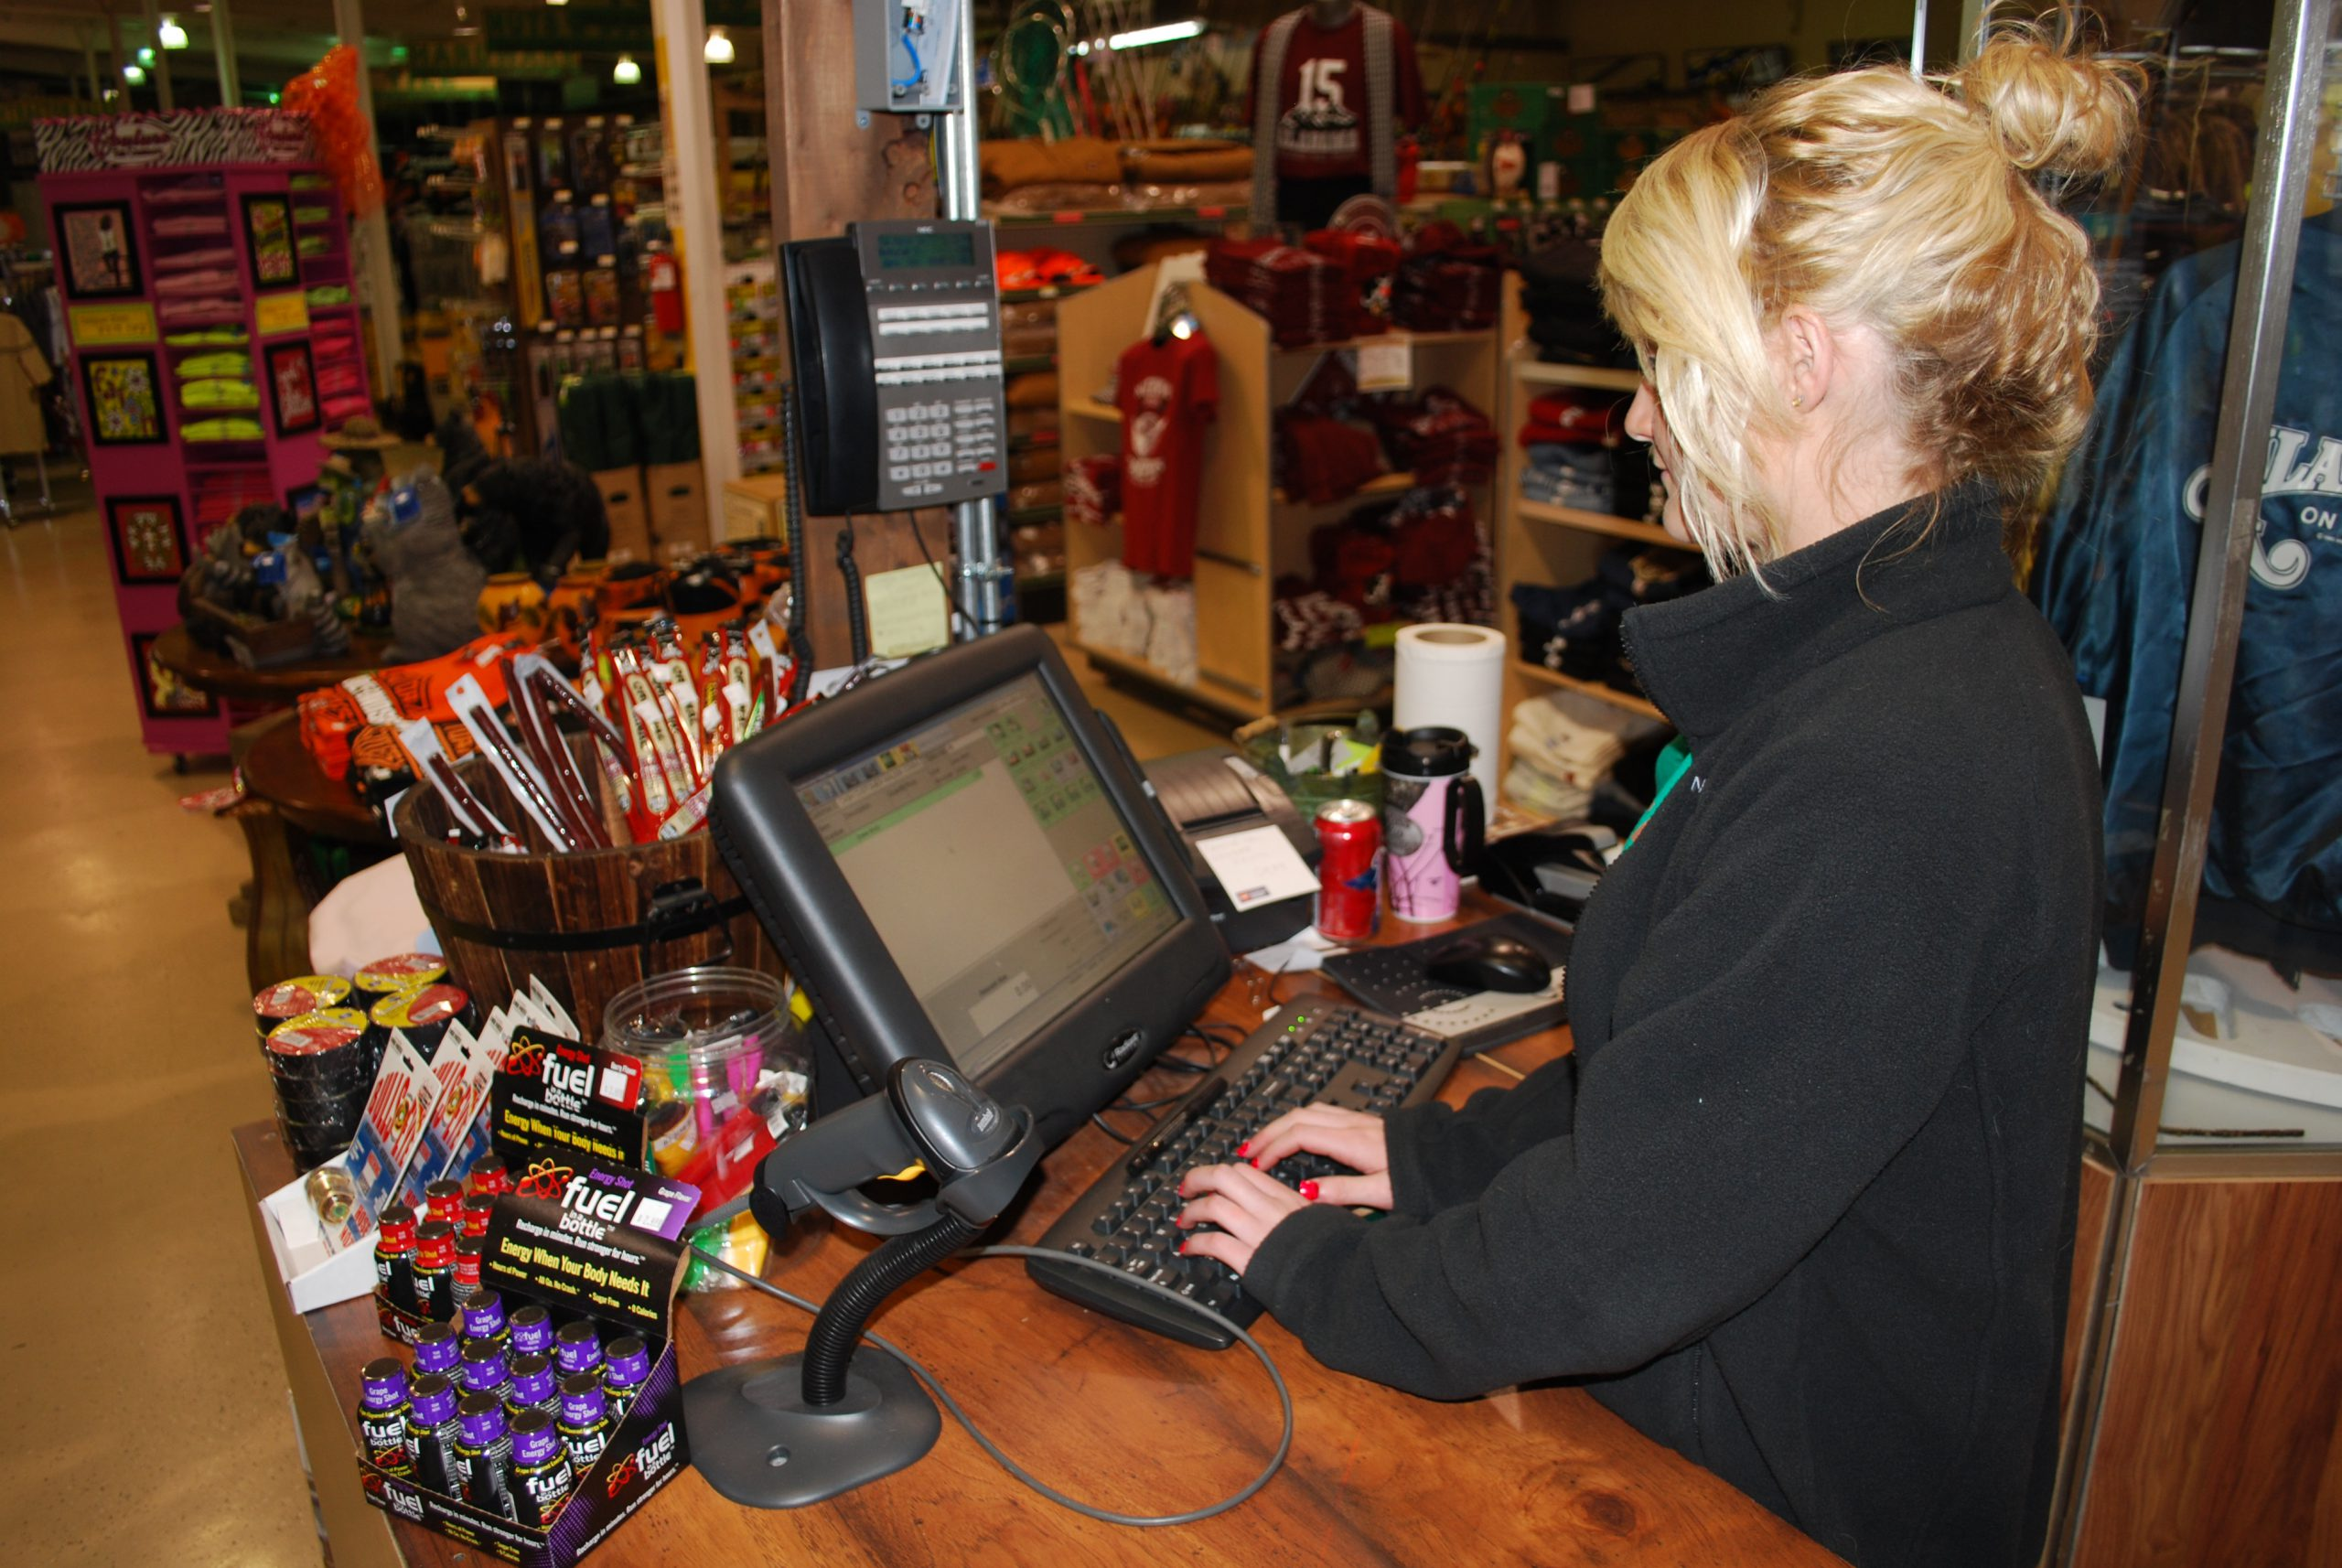 Hardware store employee using House-Hasson's point of sale system